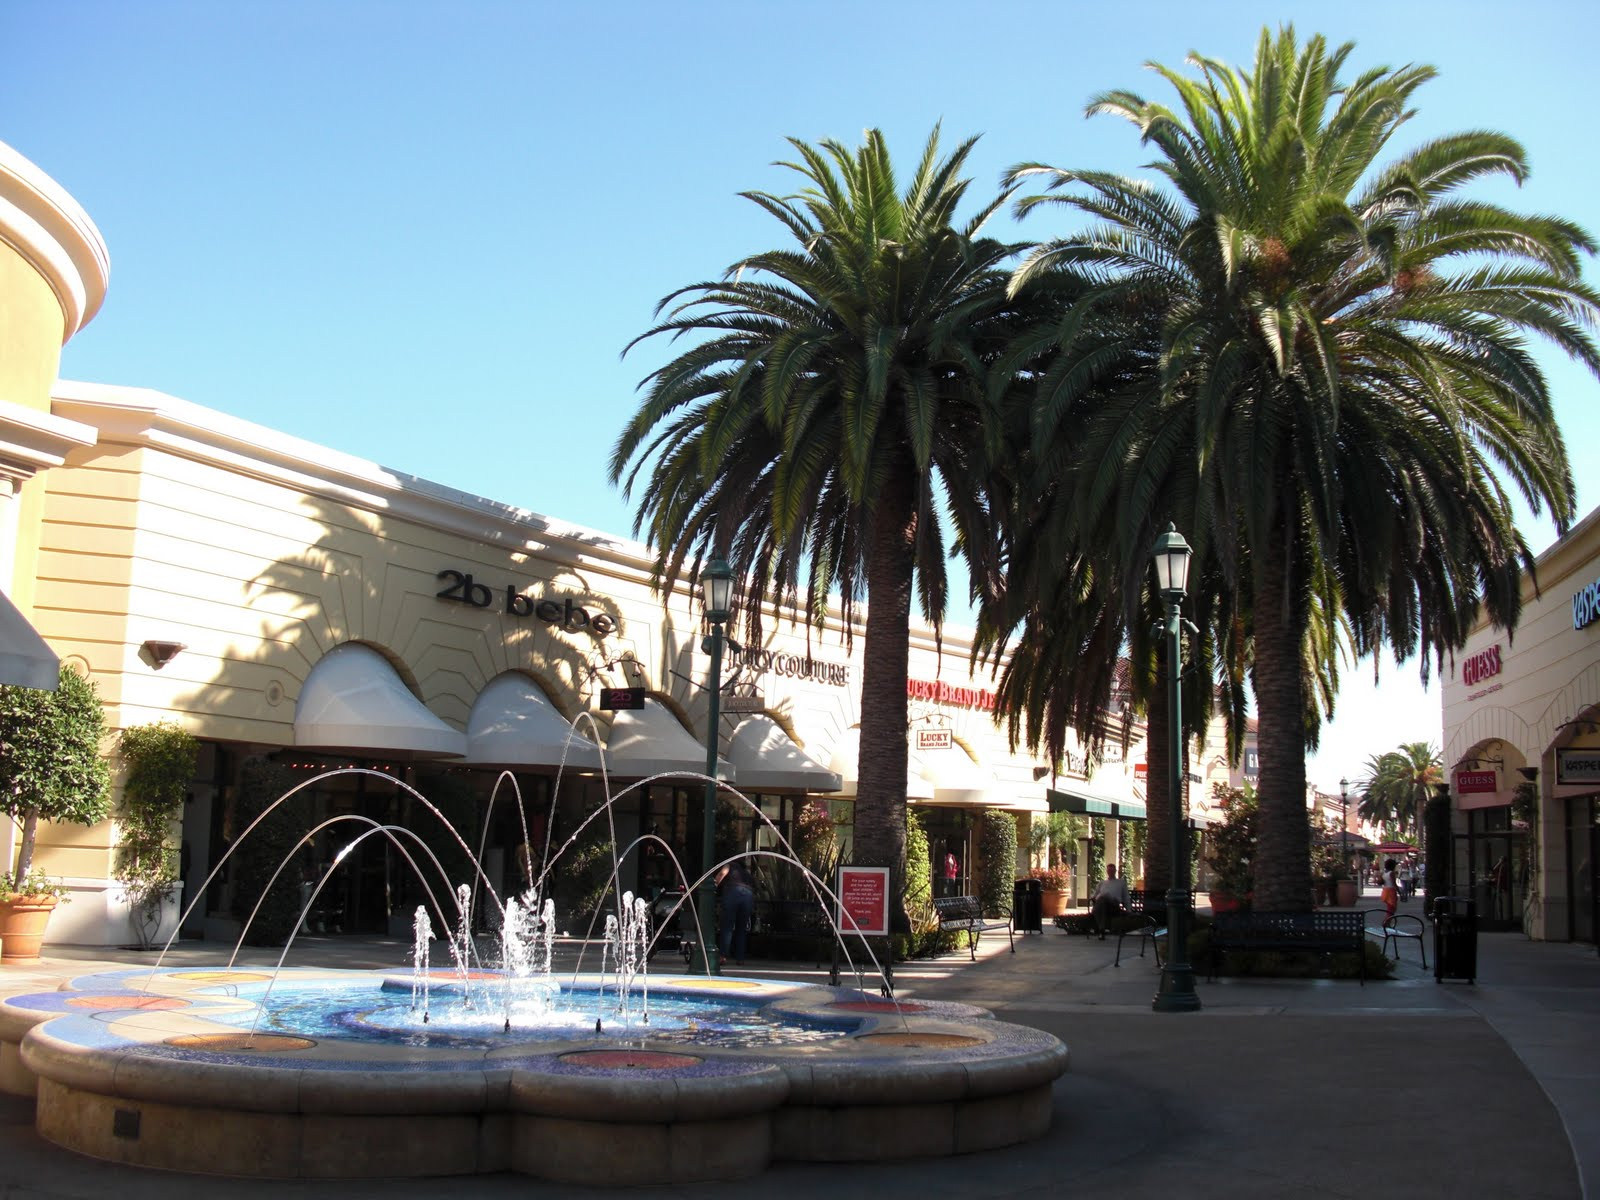 Restaurants near Carlsbad Premium Outlets, Carlsbad on TripAdvisor: Find traveler reviews and candid photos of dining near Carlsbad Premium Outlets in Carlsbad, California.